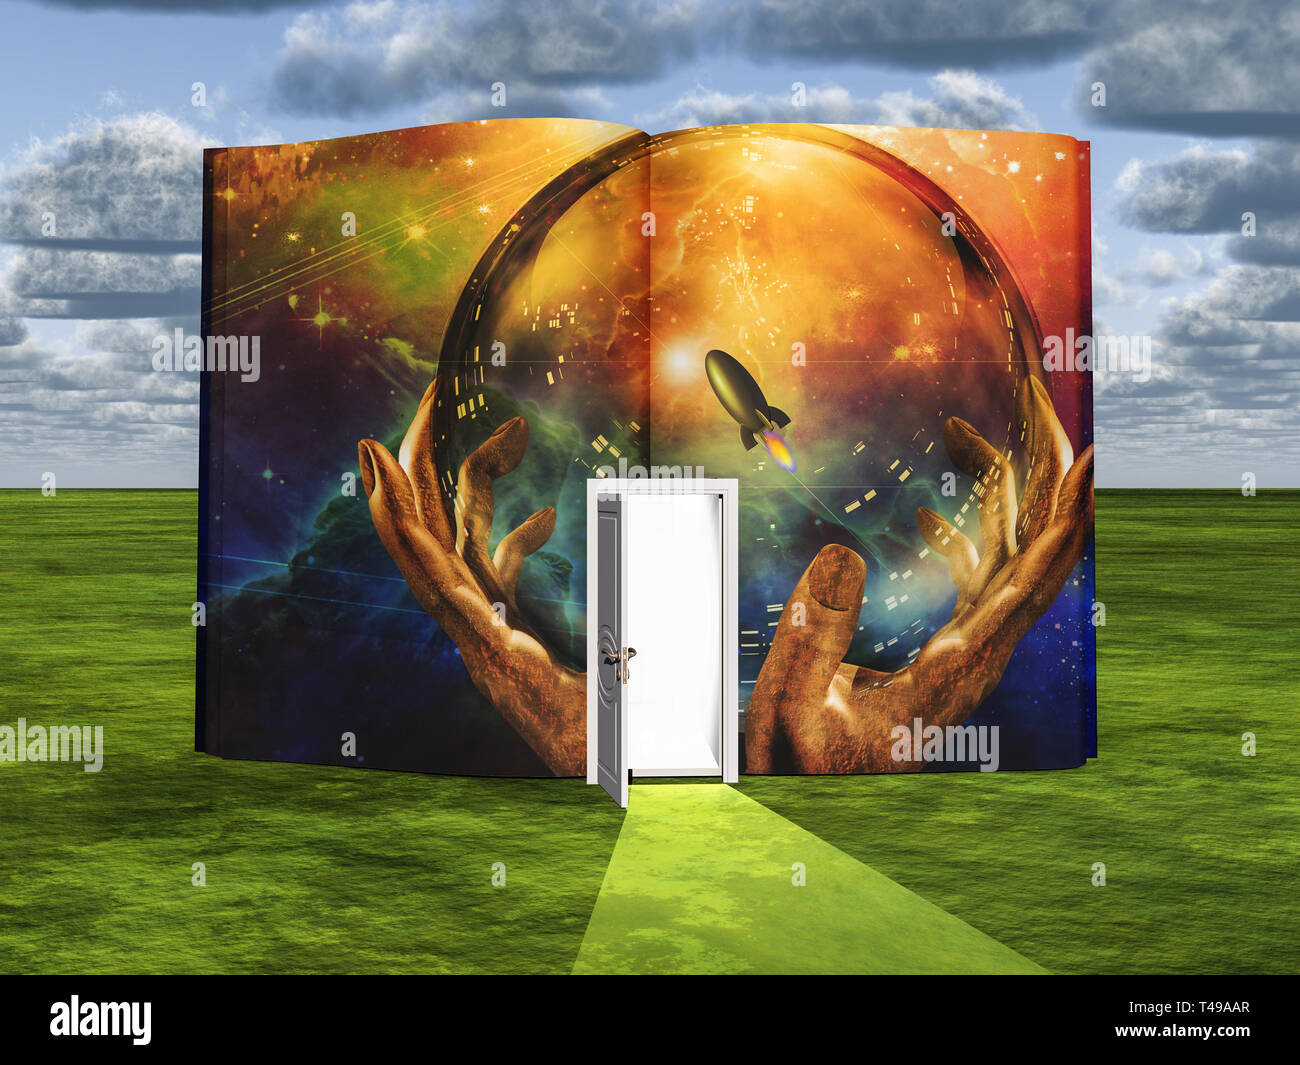 Book with science fiction scene and open doorway of light - Stock Image